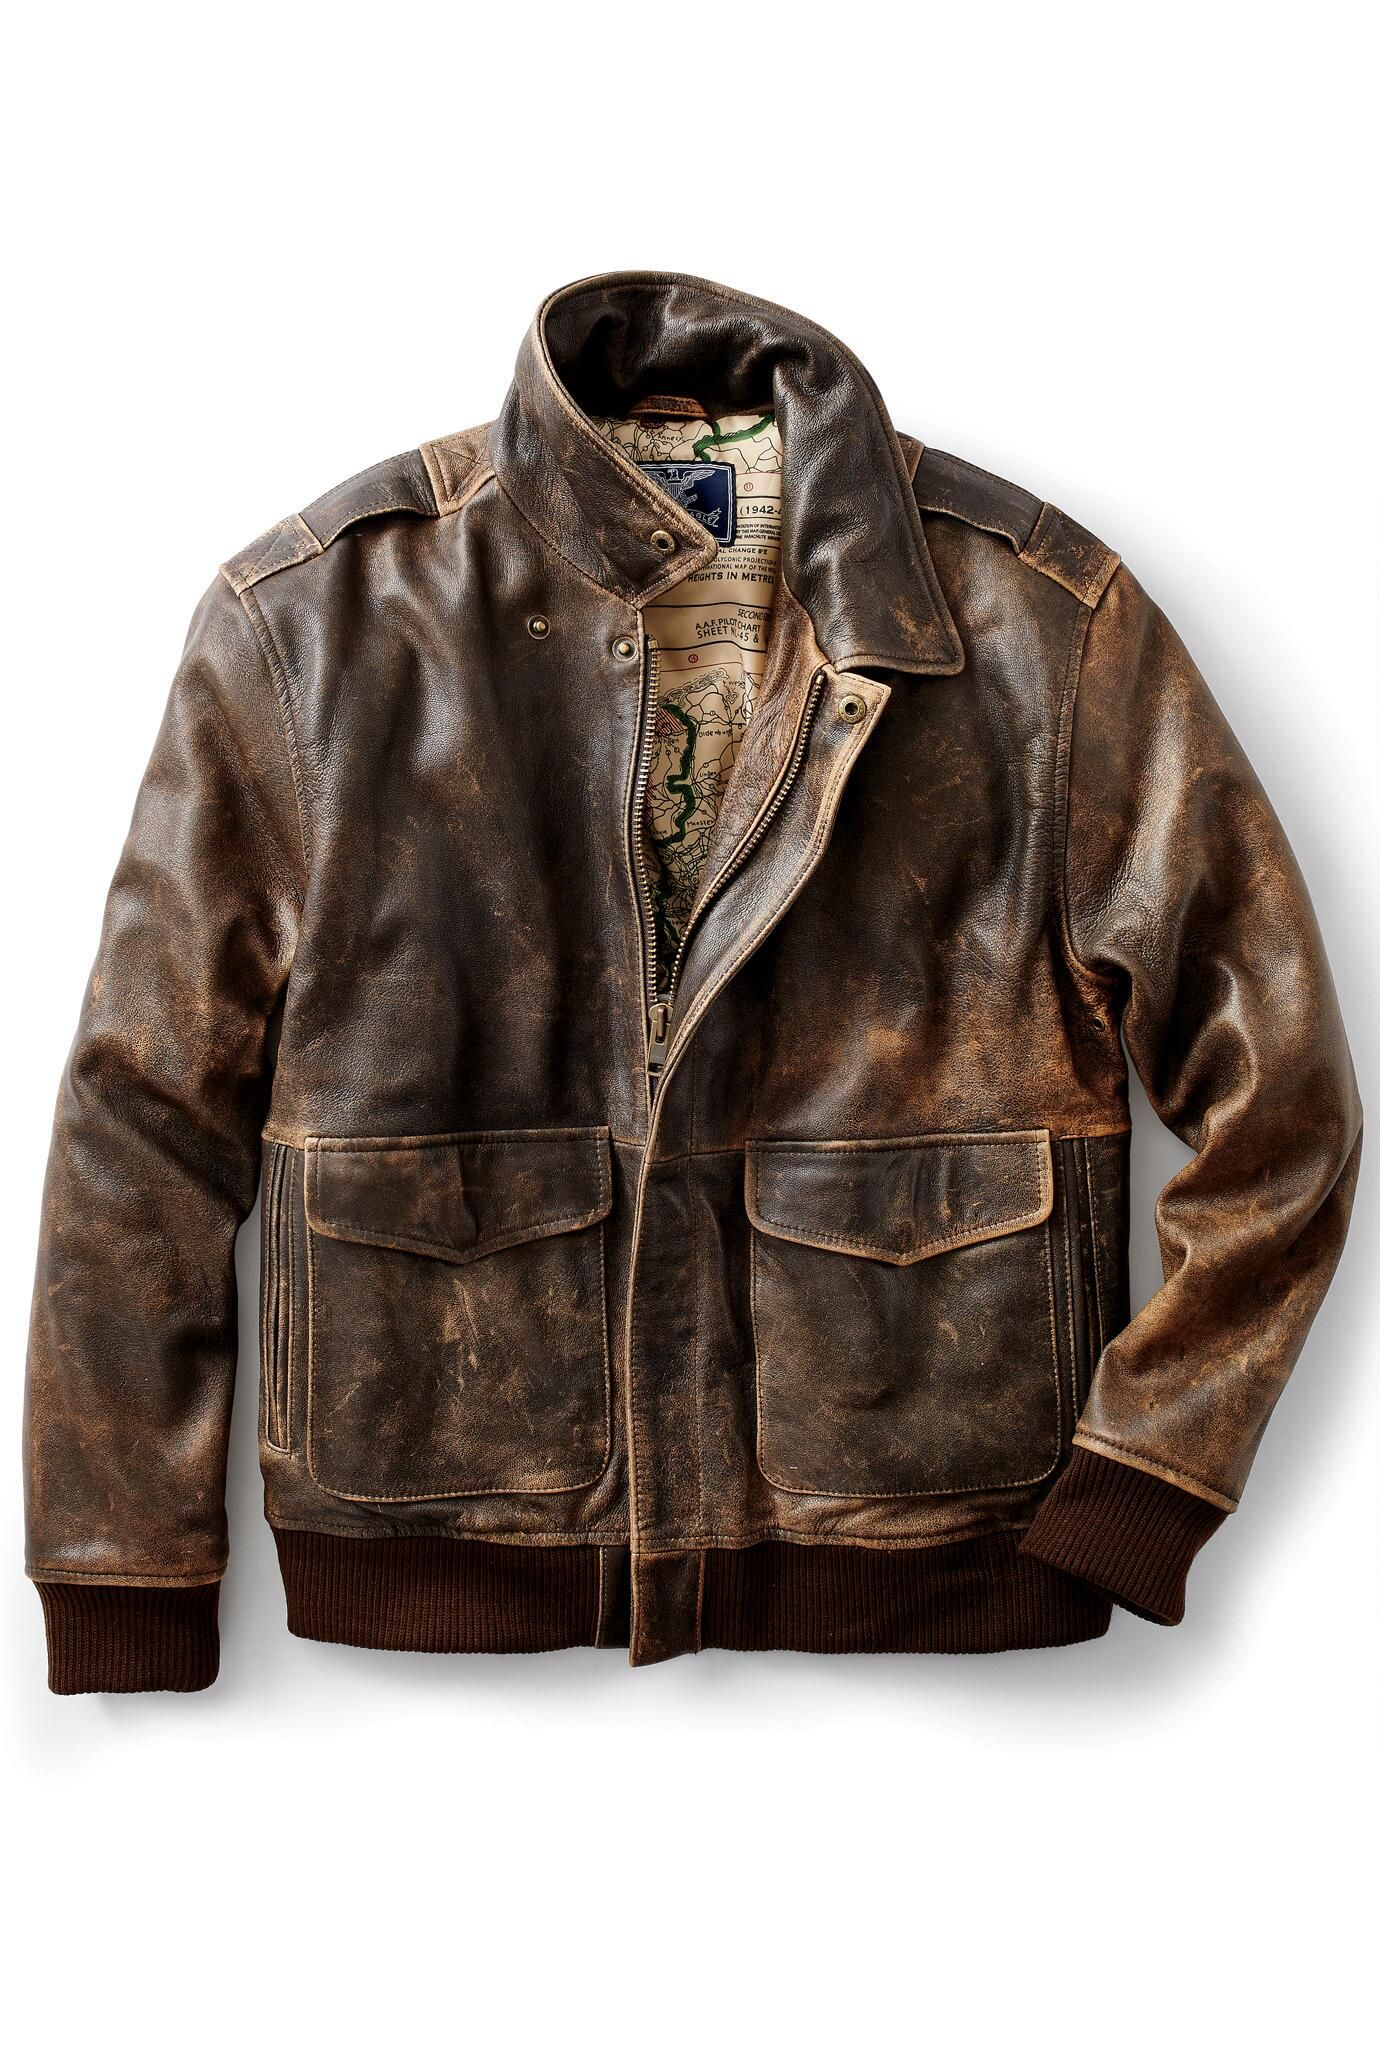 f273db2edc7 A-2 Blue Eagle Leather Bomber from Cockpit®  Exceptional Casual Clothing  for Men   Women from  TerritoryAhead  350.00